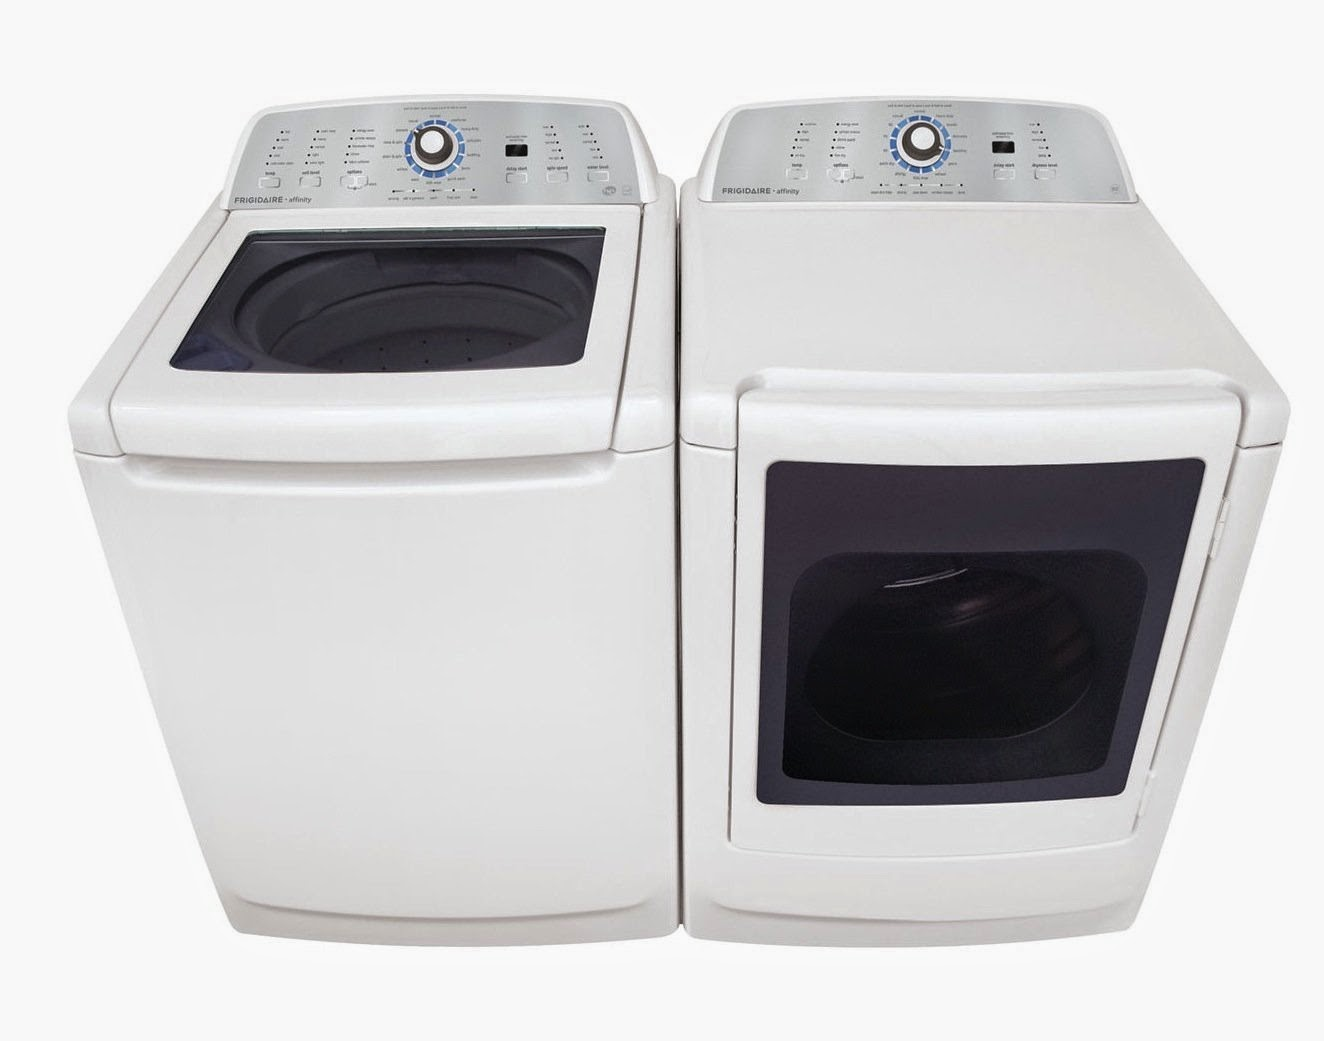 frigidaire topload white washer and dryer sets